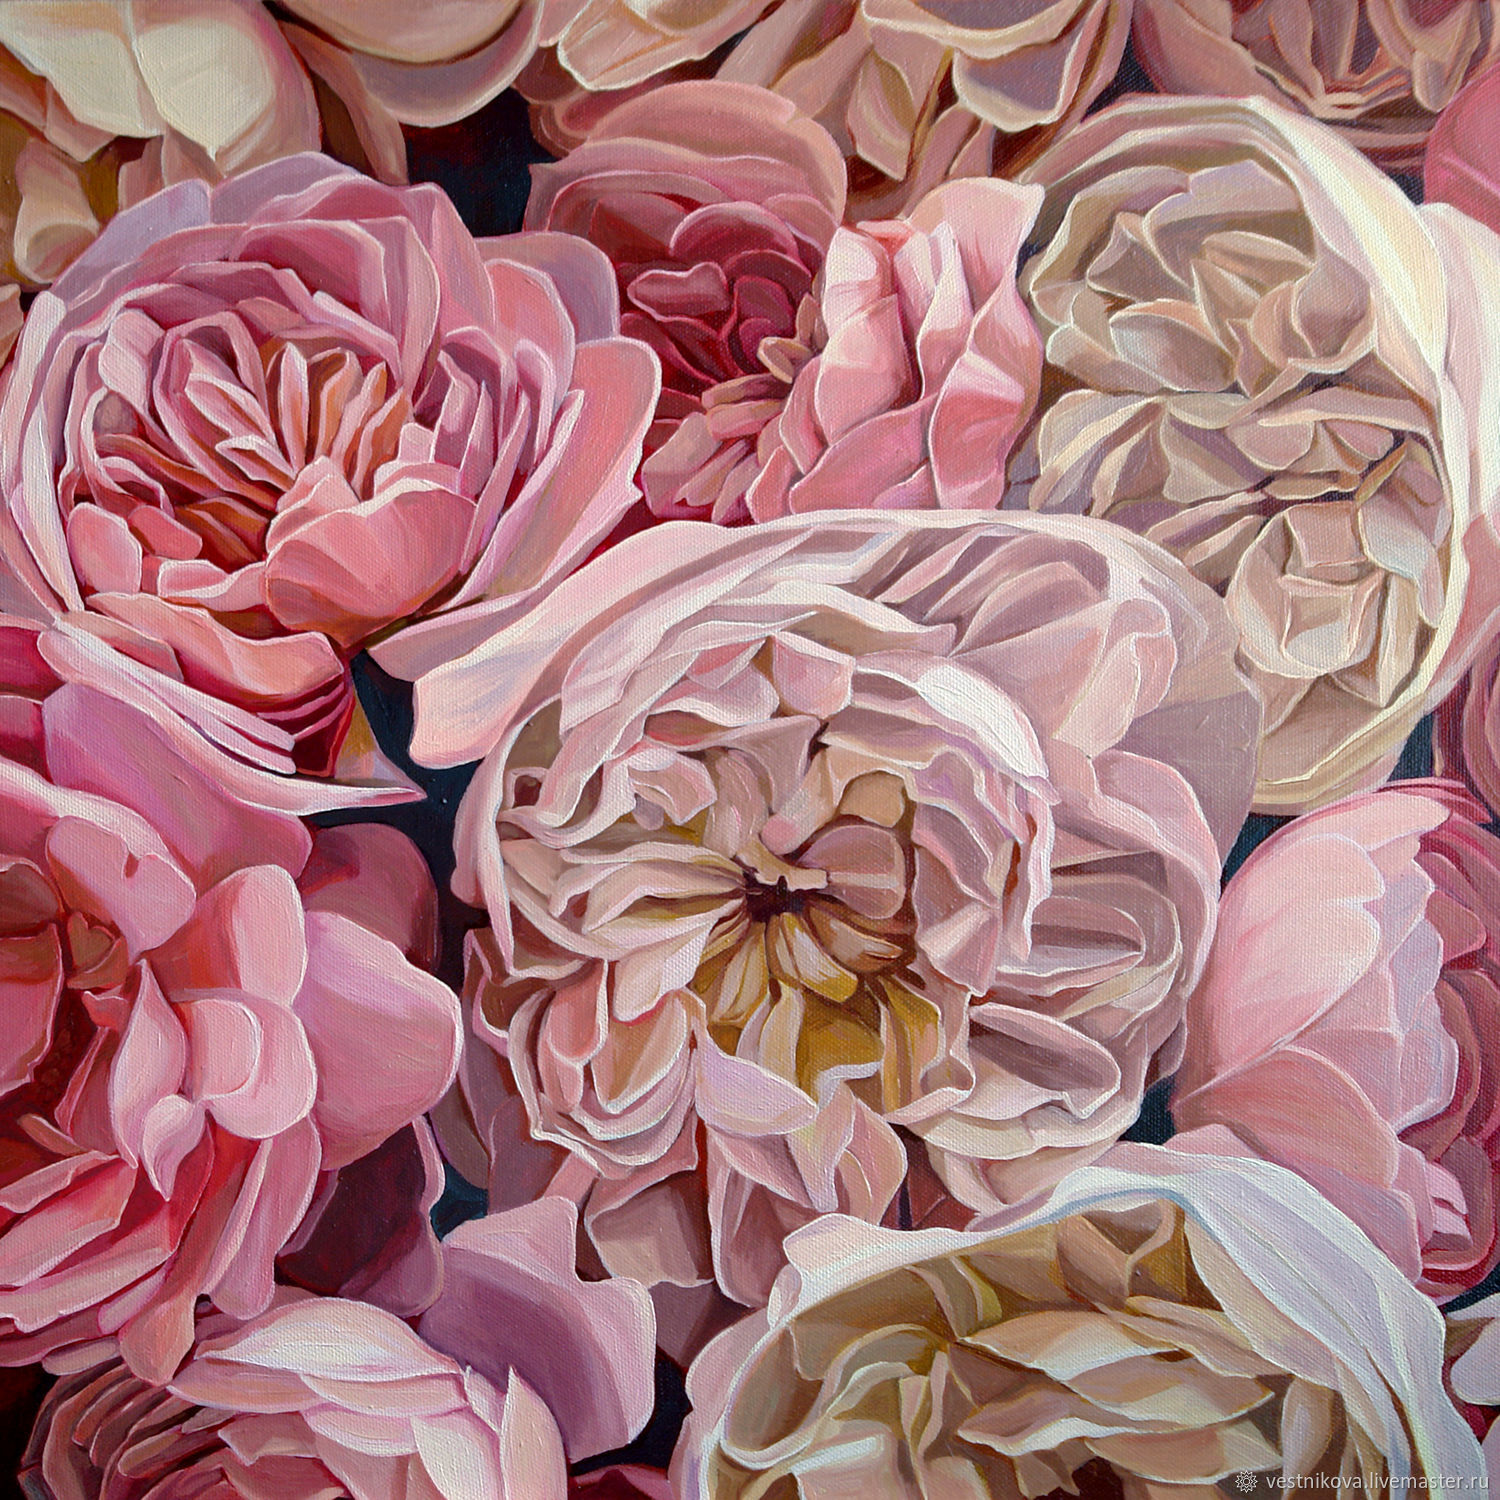 Painting with flowers 'Pink peony roses' oil on canvas, Pictures, Moscow,  Фото №1